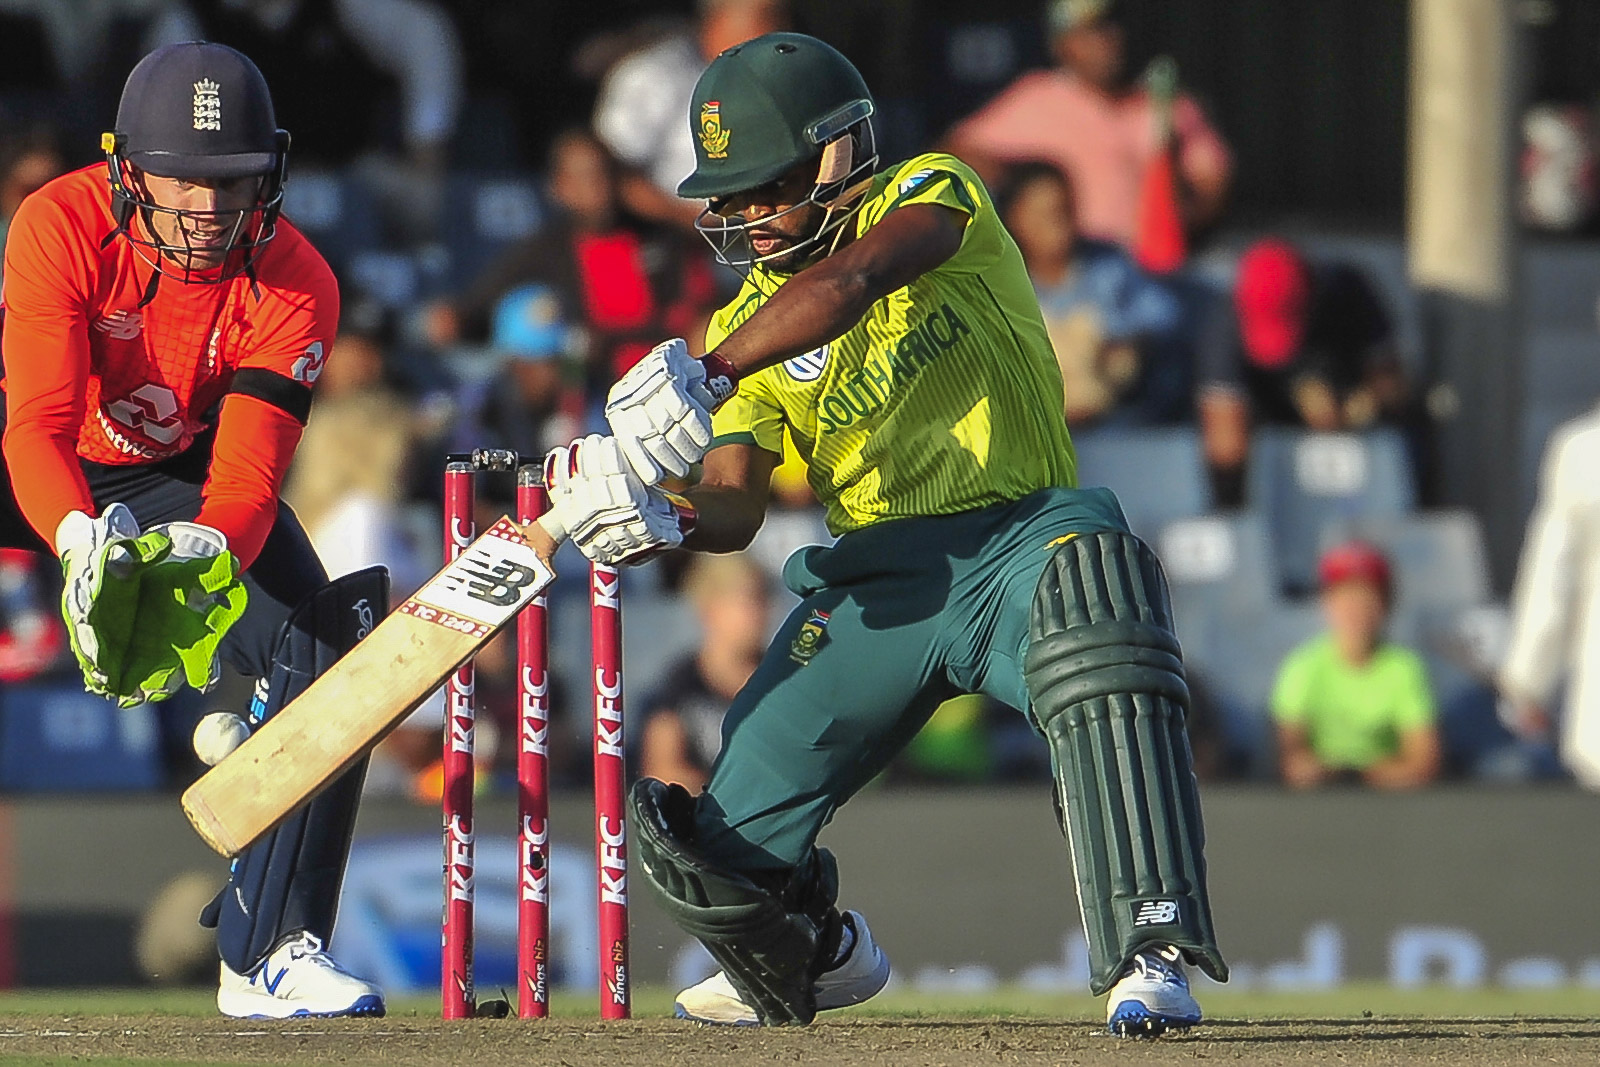 Winners and losers from the T20I series defeat by England - SA Cricket Mag